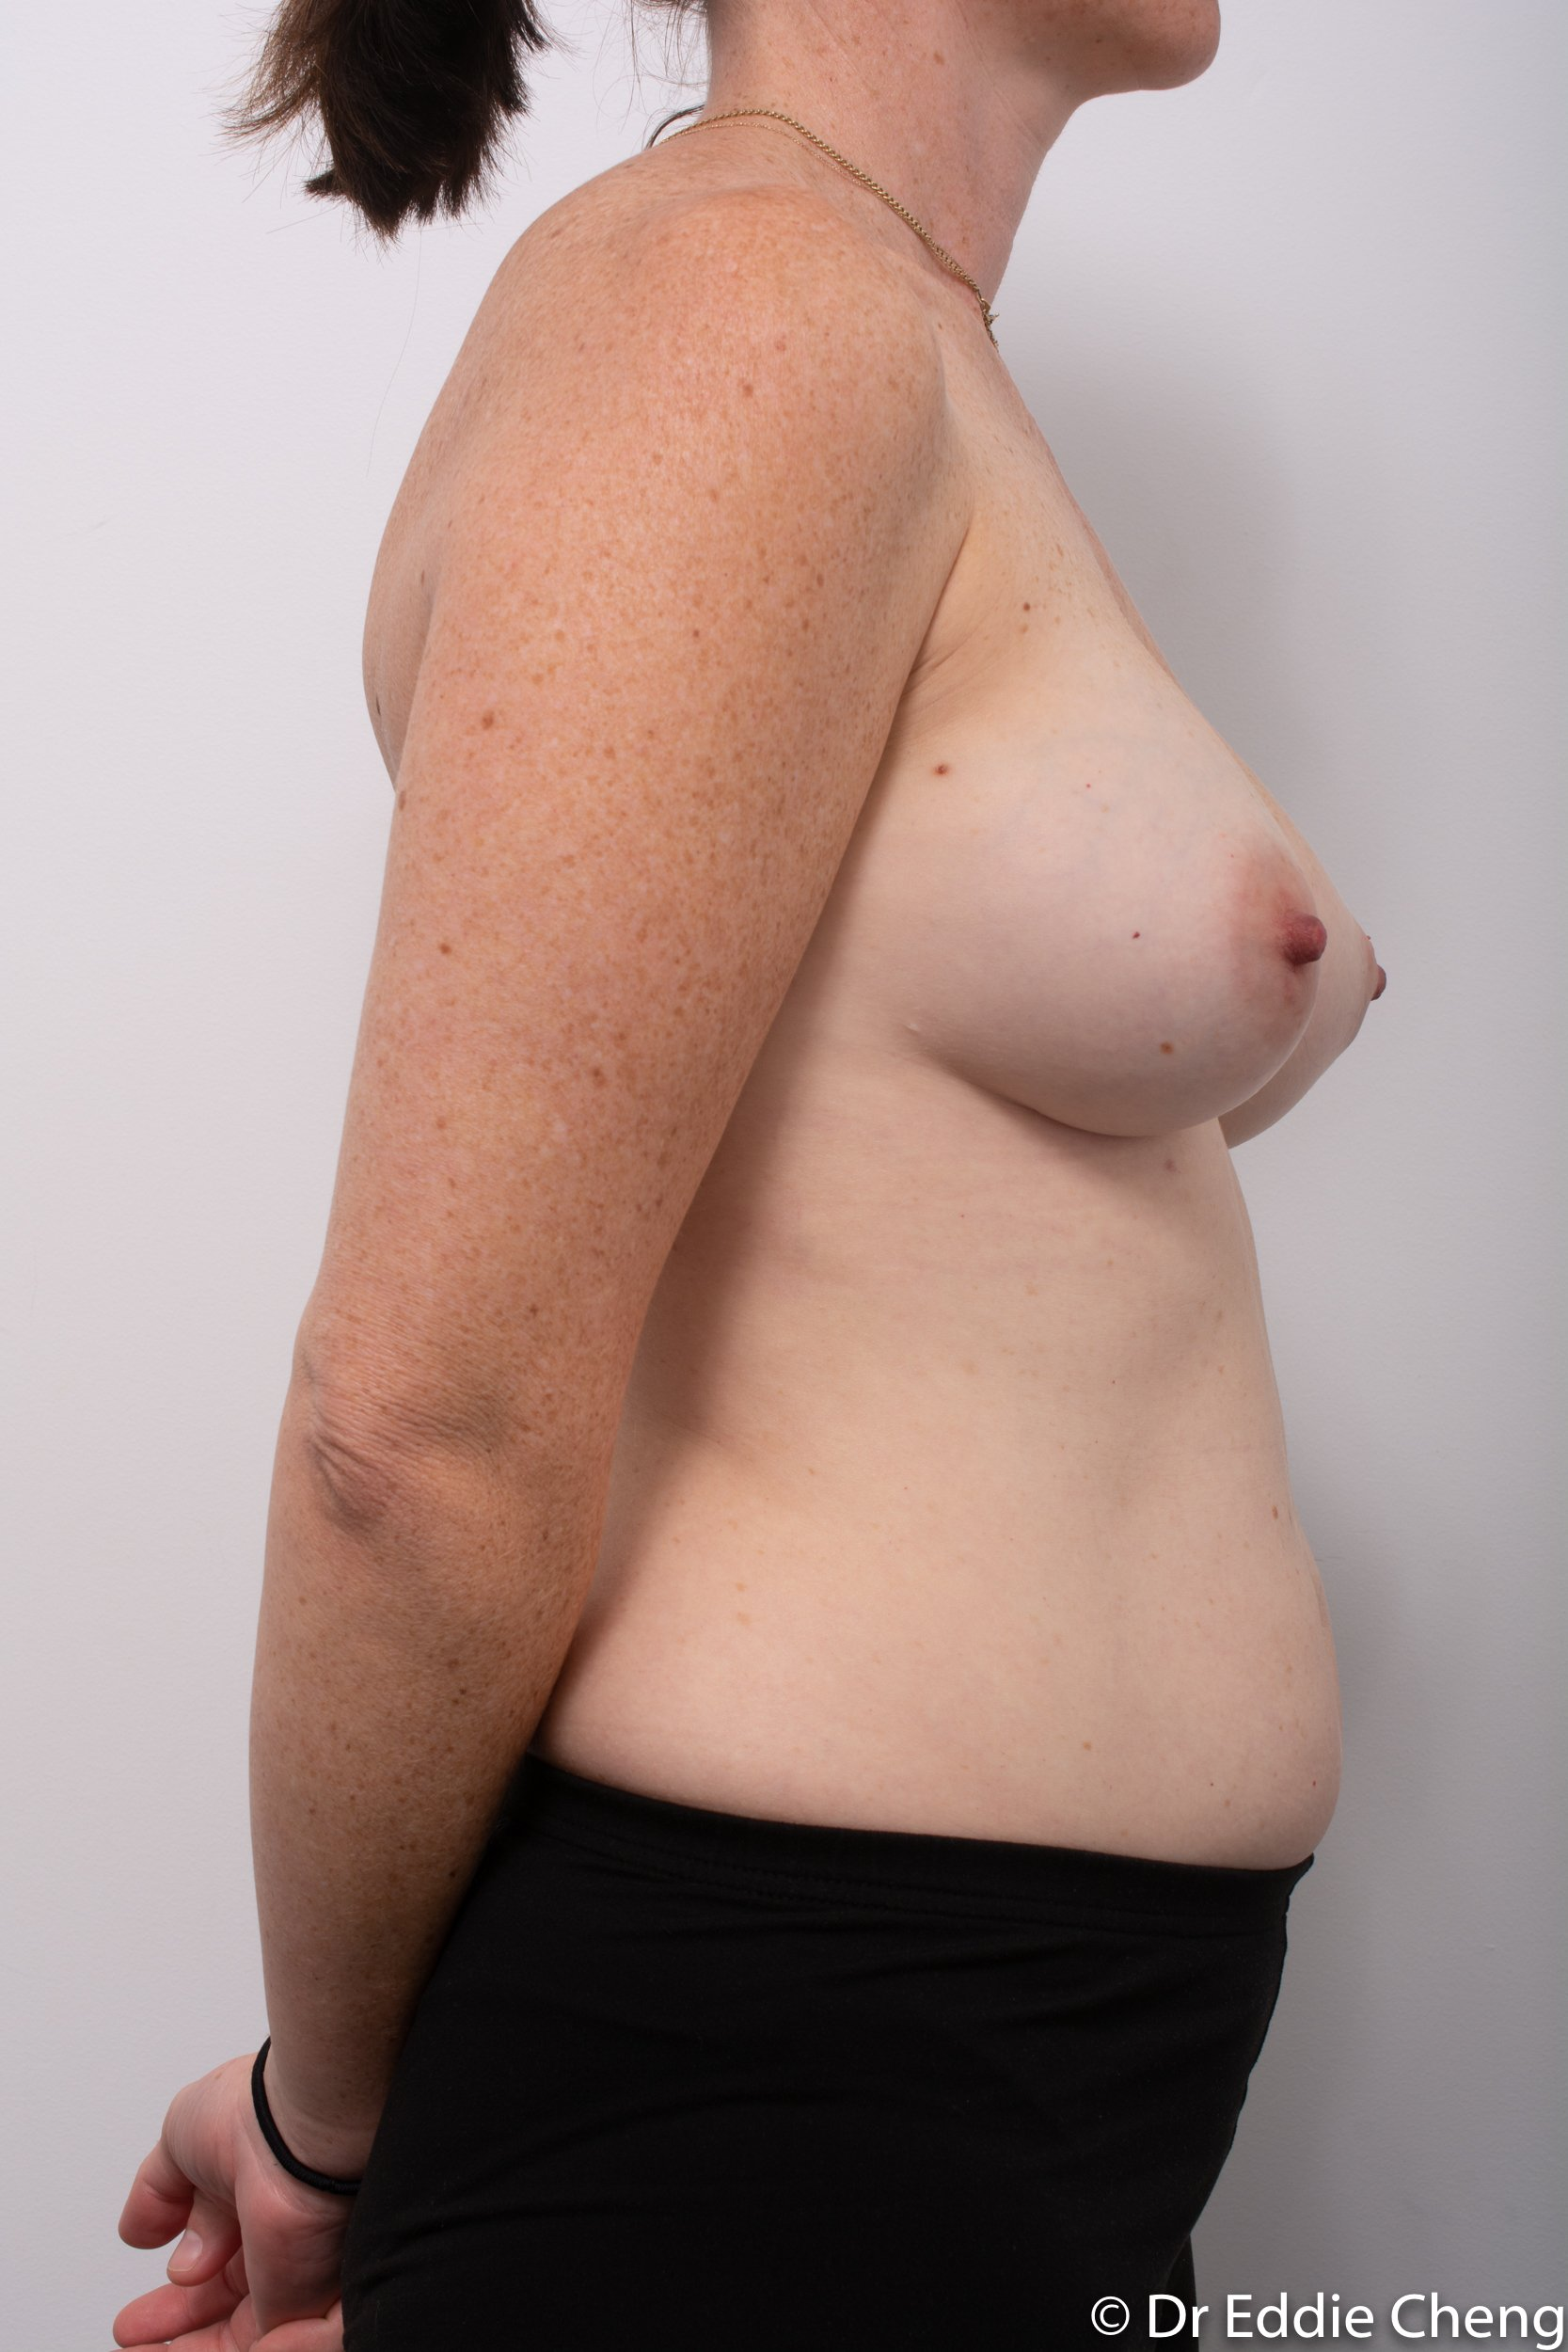 removal of implants or explant surgery dr eddie cheng brisbane-1